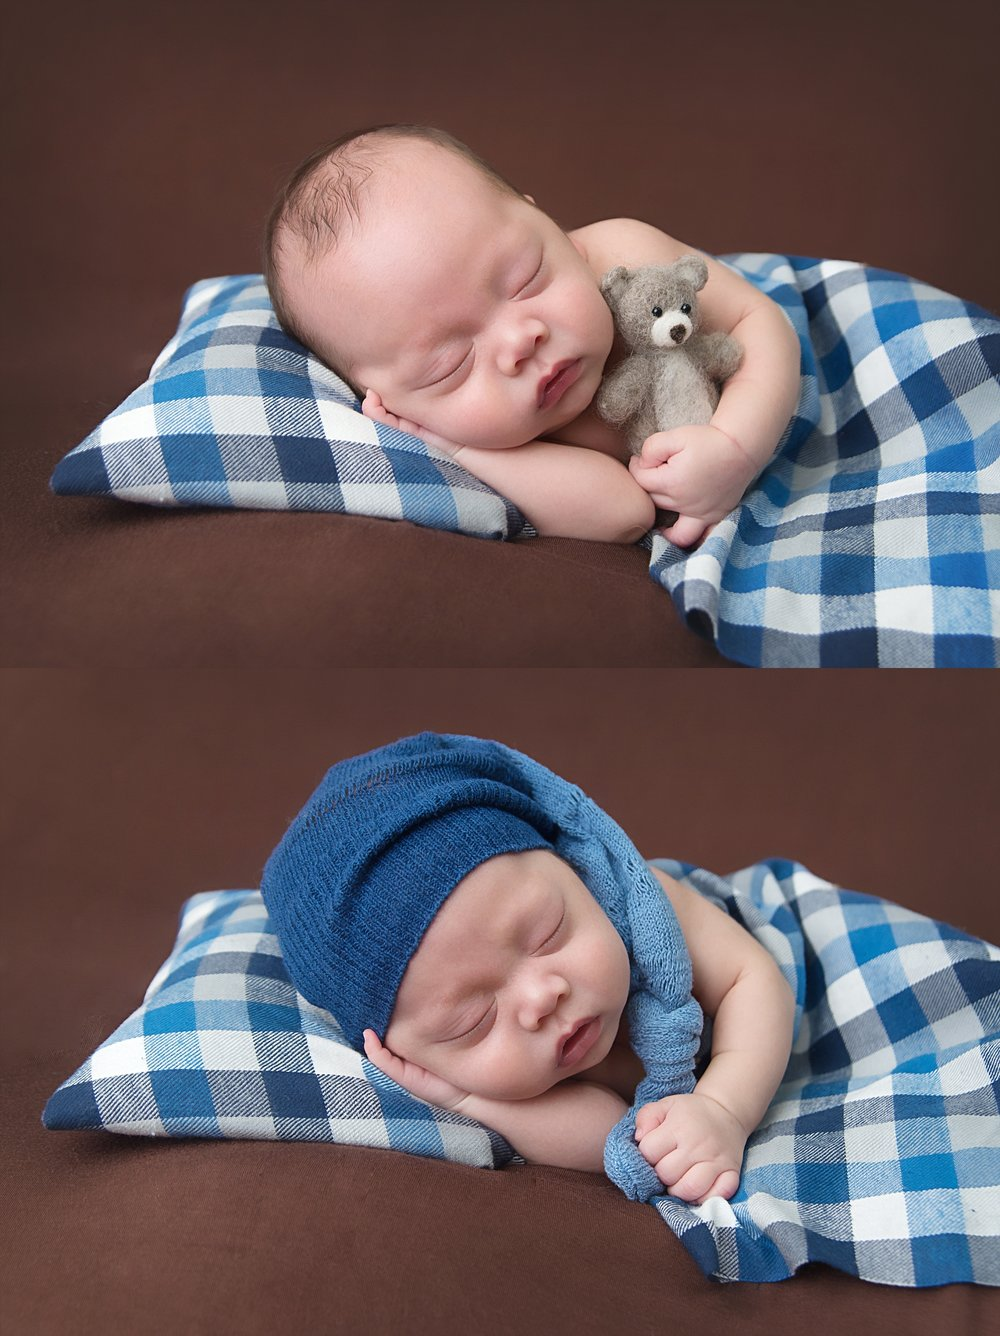 st-louis-newborn-photographer-baby-boy-with-blue-plaid-pillow-and-blanket.jpg